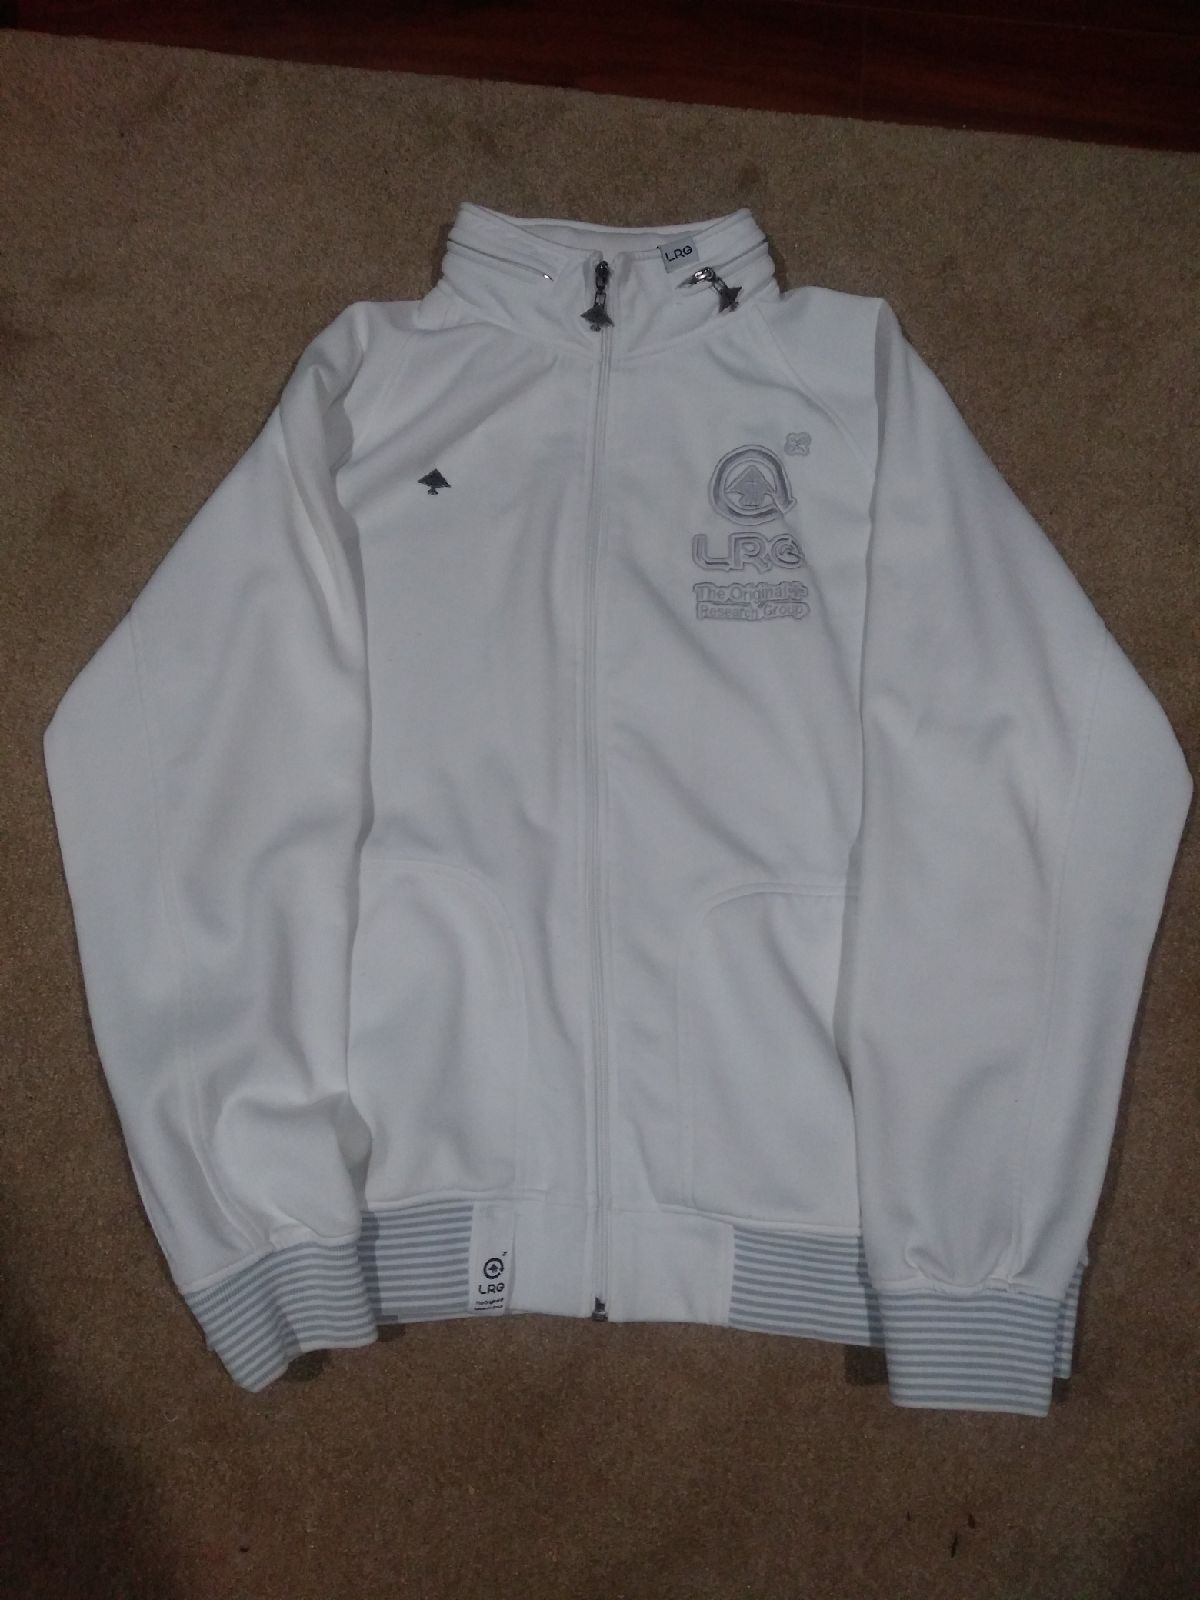 Lifted Research Group warm-up jacket